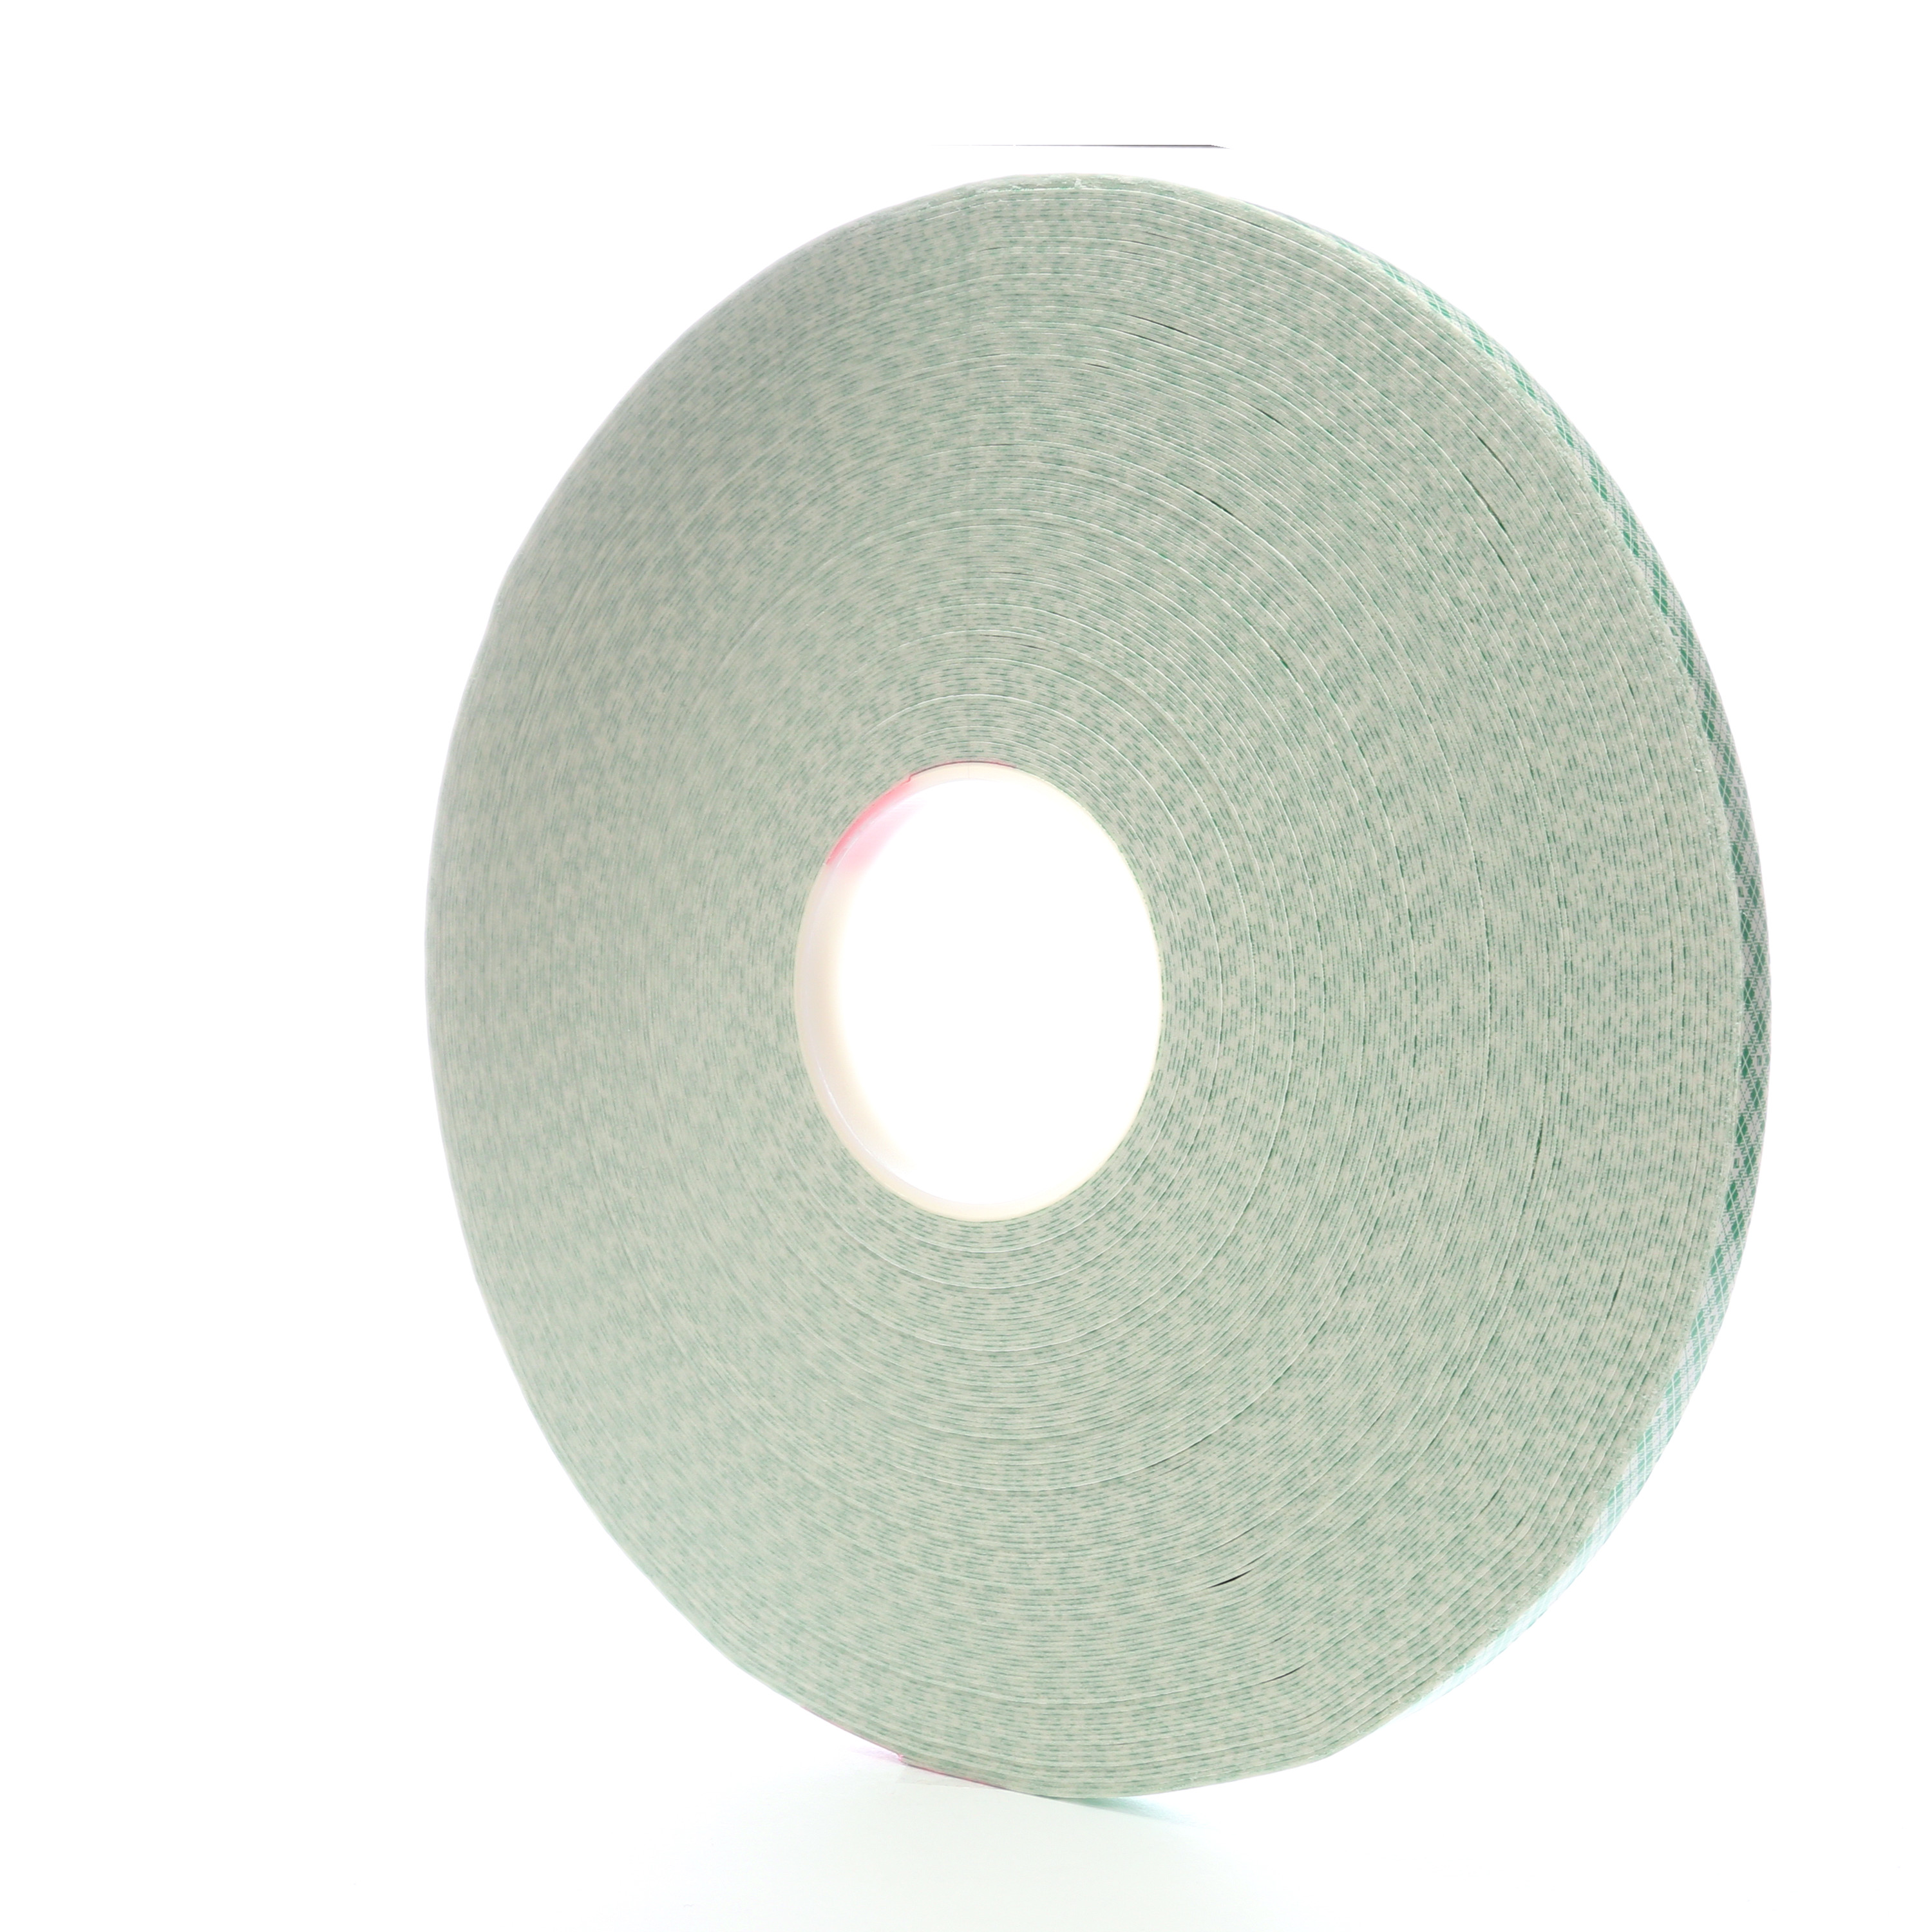 3M™ Double Coated Urethane Foam Tape 4032, Off White, 1/2 in x 72 yd, 31 mil, 18 rolls per case